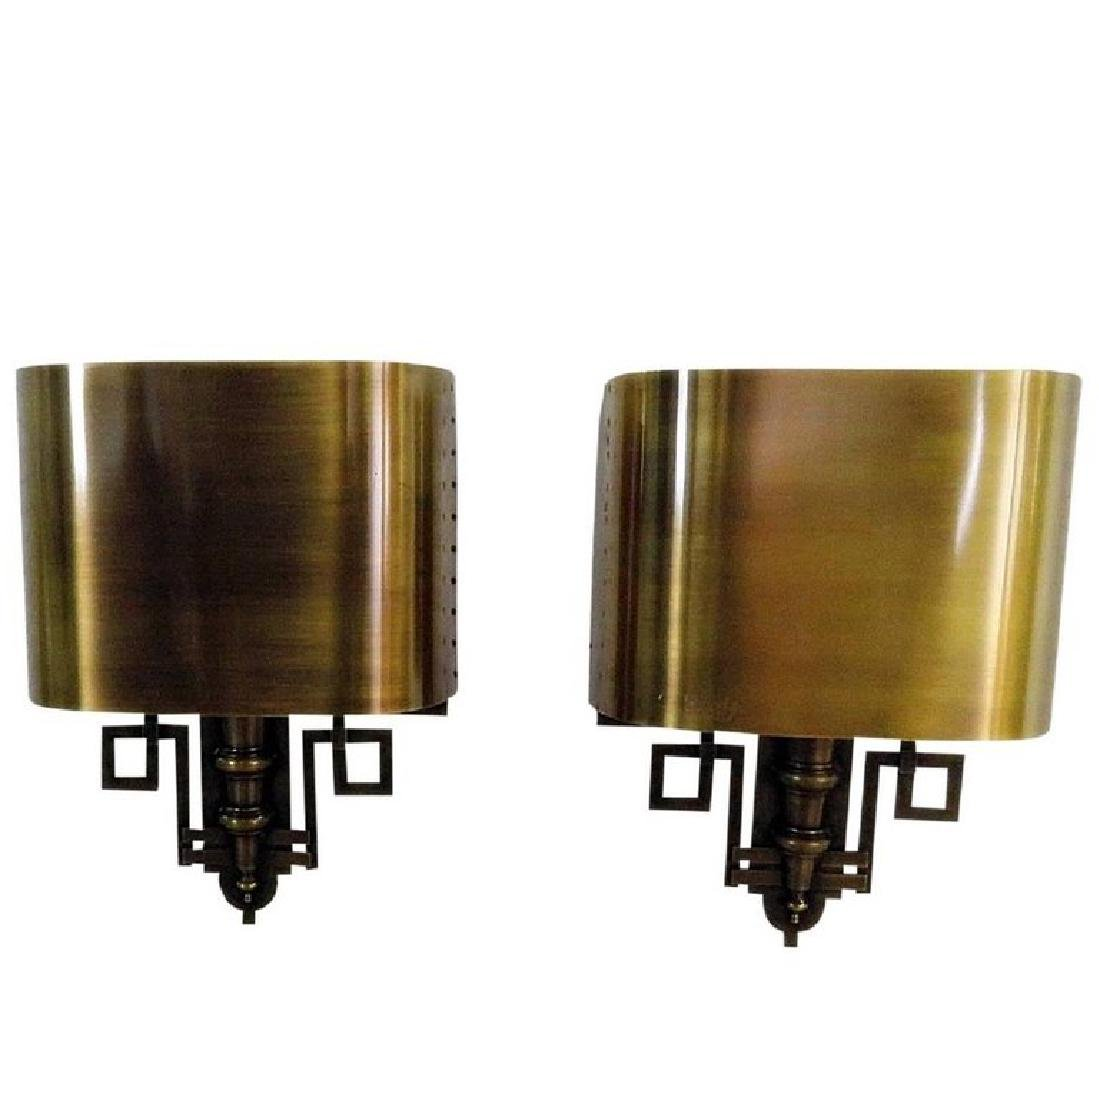 Pair of French Mid-Century Modern Wall Sconces